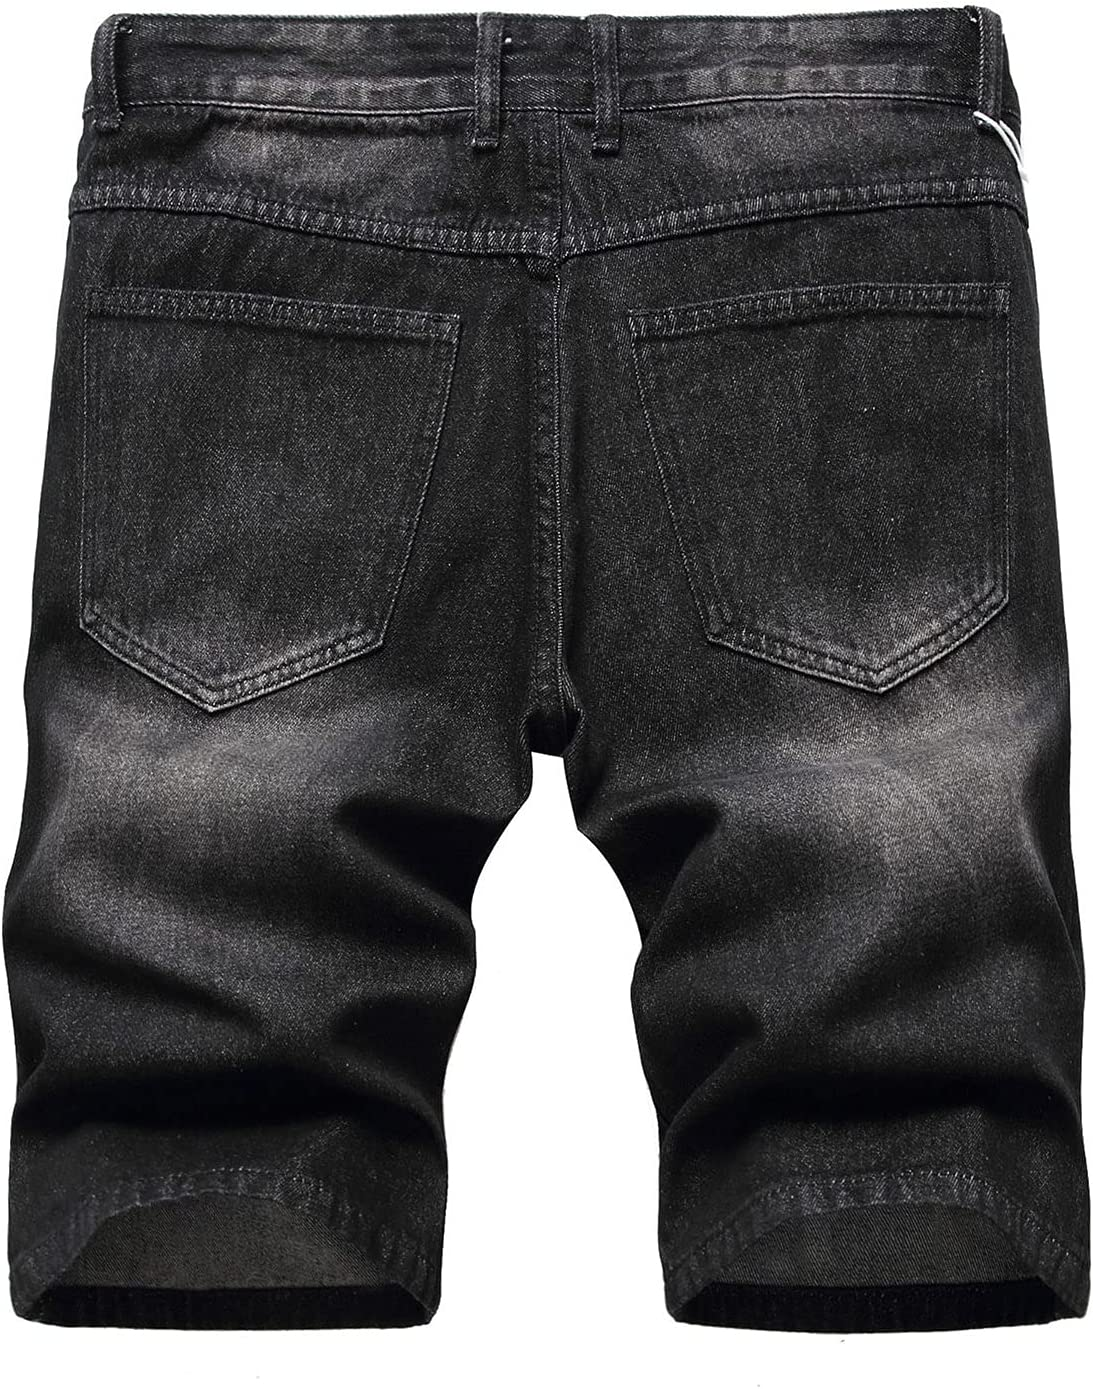 Men's Summer Vintage Ripped Hole Denim Short Washed Distressed Jeans Shorts Stretch Straight Jean Short with Zipper (Black,38)